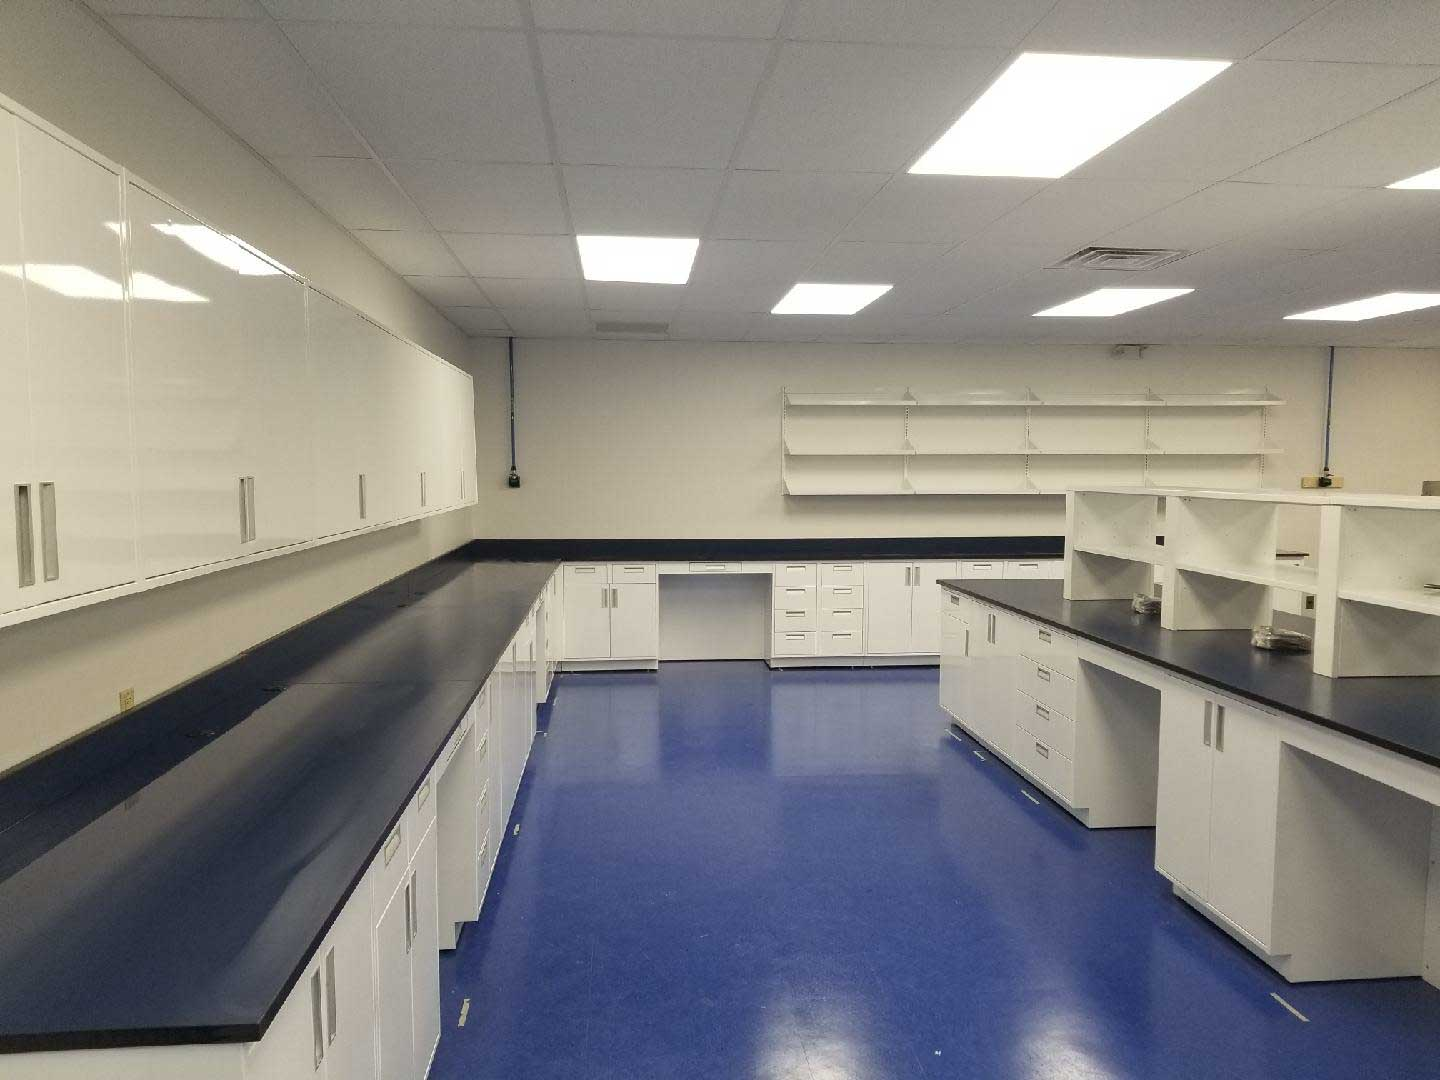 laboratory casework island and reagent shelves